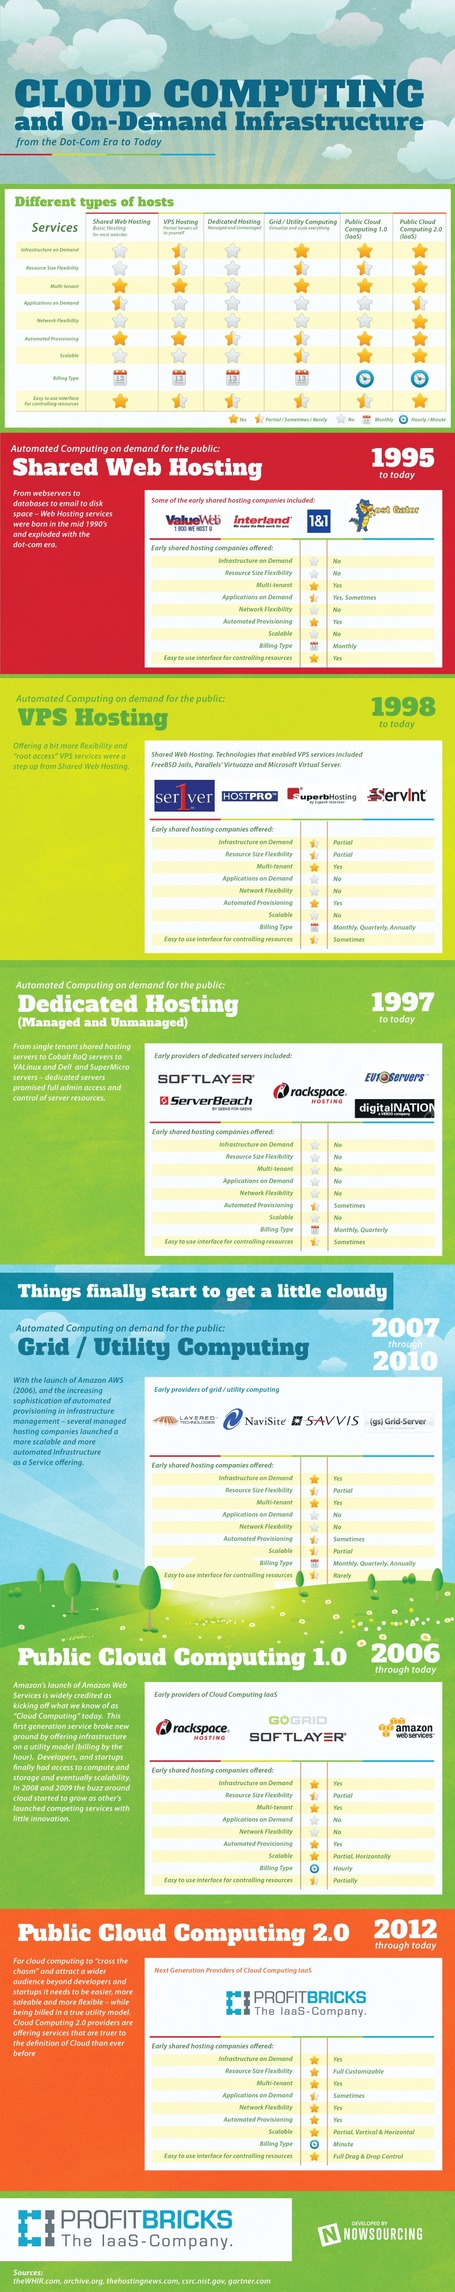 INFOGRAPHIC: Cloud Computing and On-Demand Infrastructure | Cloud Central | Scoop.it